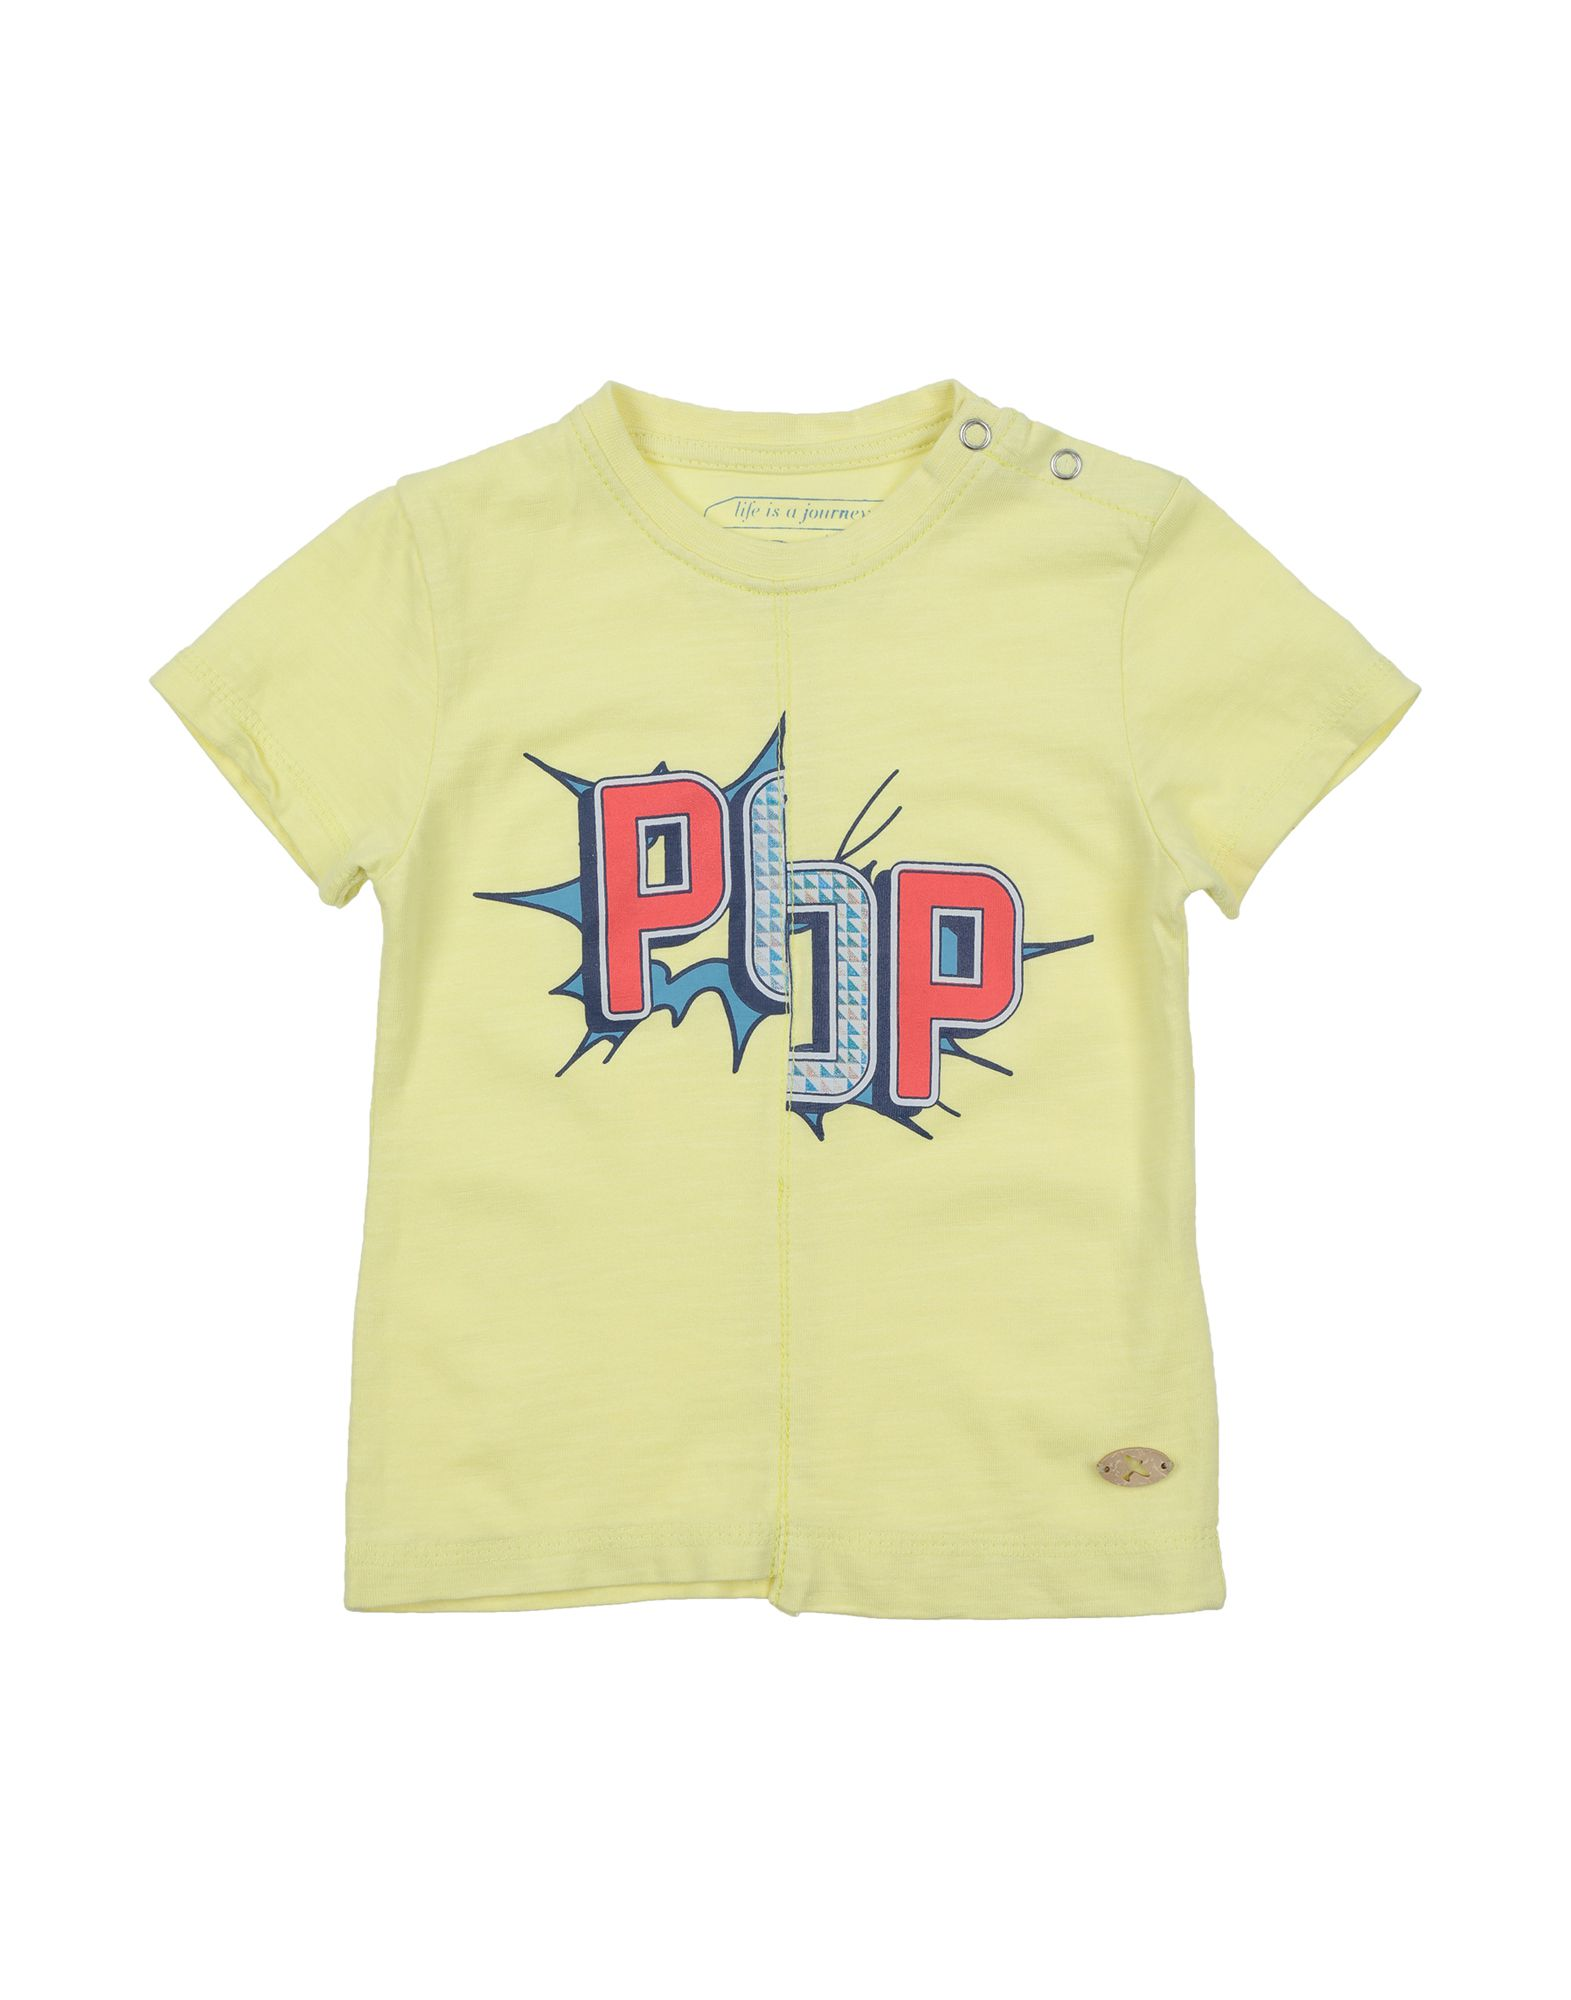 Sp1 Kids' T-shirts In Yellow